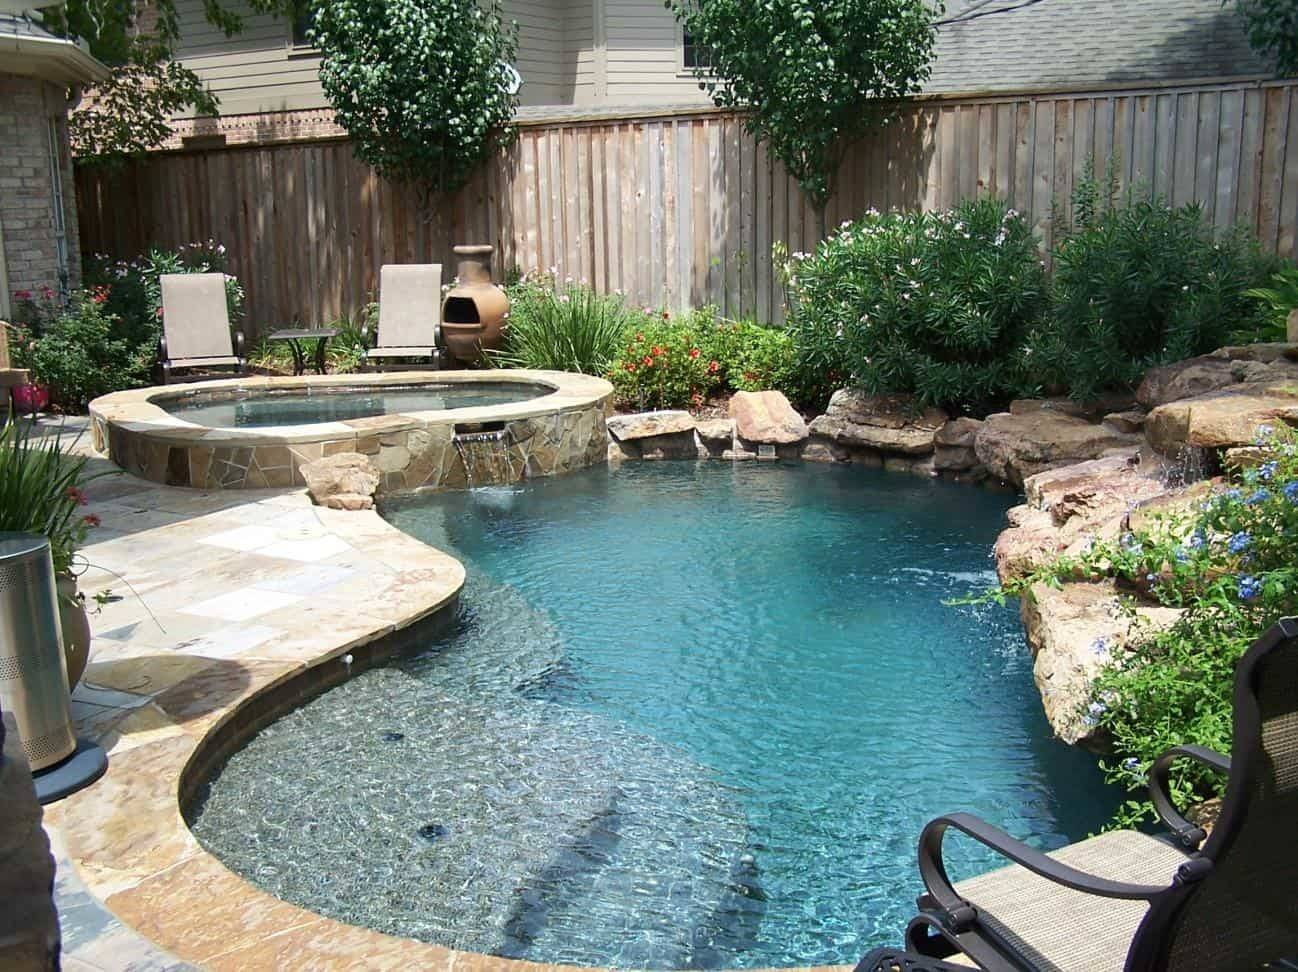 Pool Landscape Design | 3D Pools and Landscape Katy | Houston